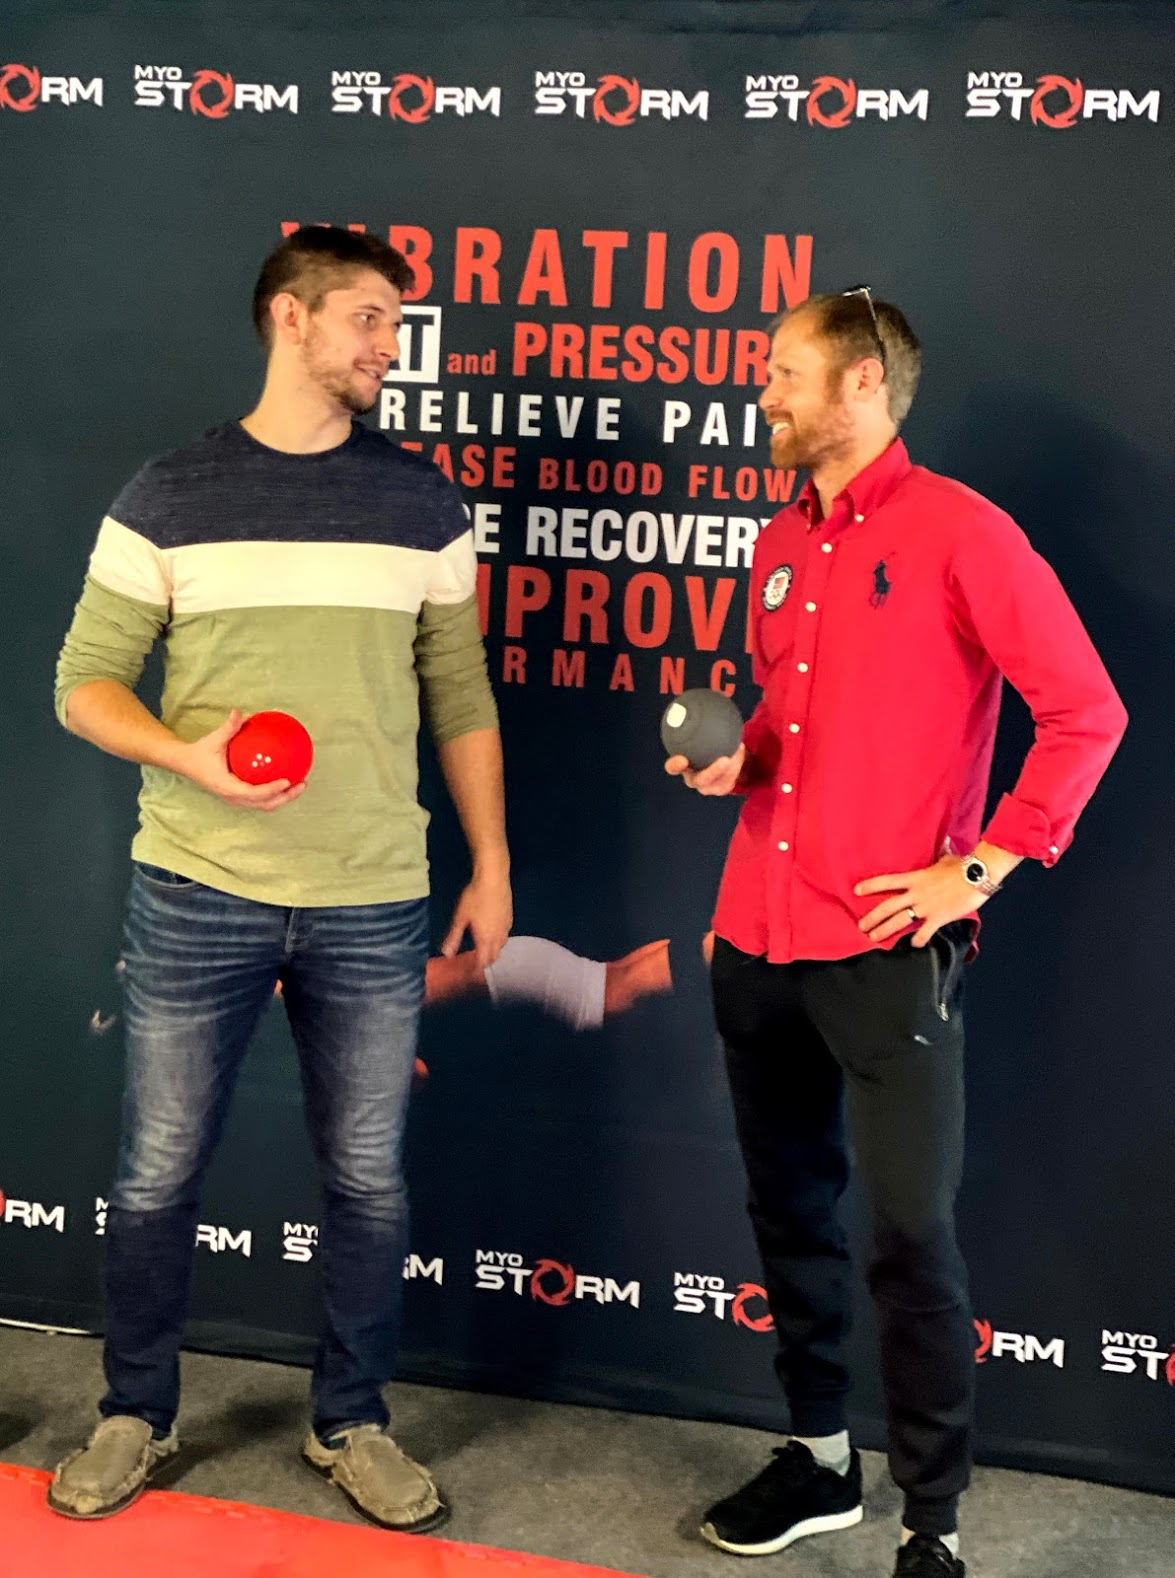 Jono Diperi, left, and Jared Ward show off the MyoStorm Meteor heat therapy massage ball.